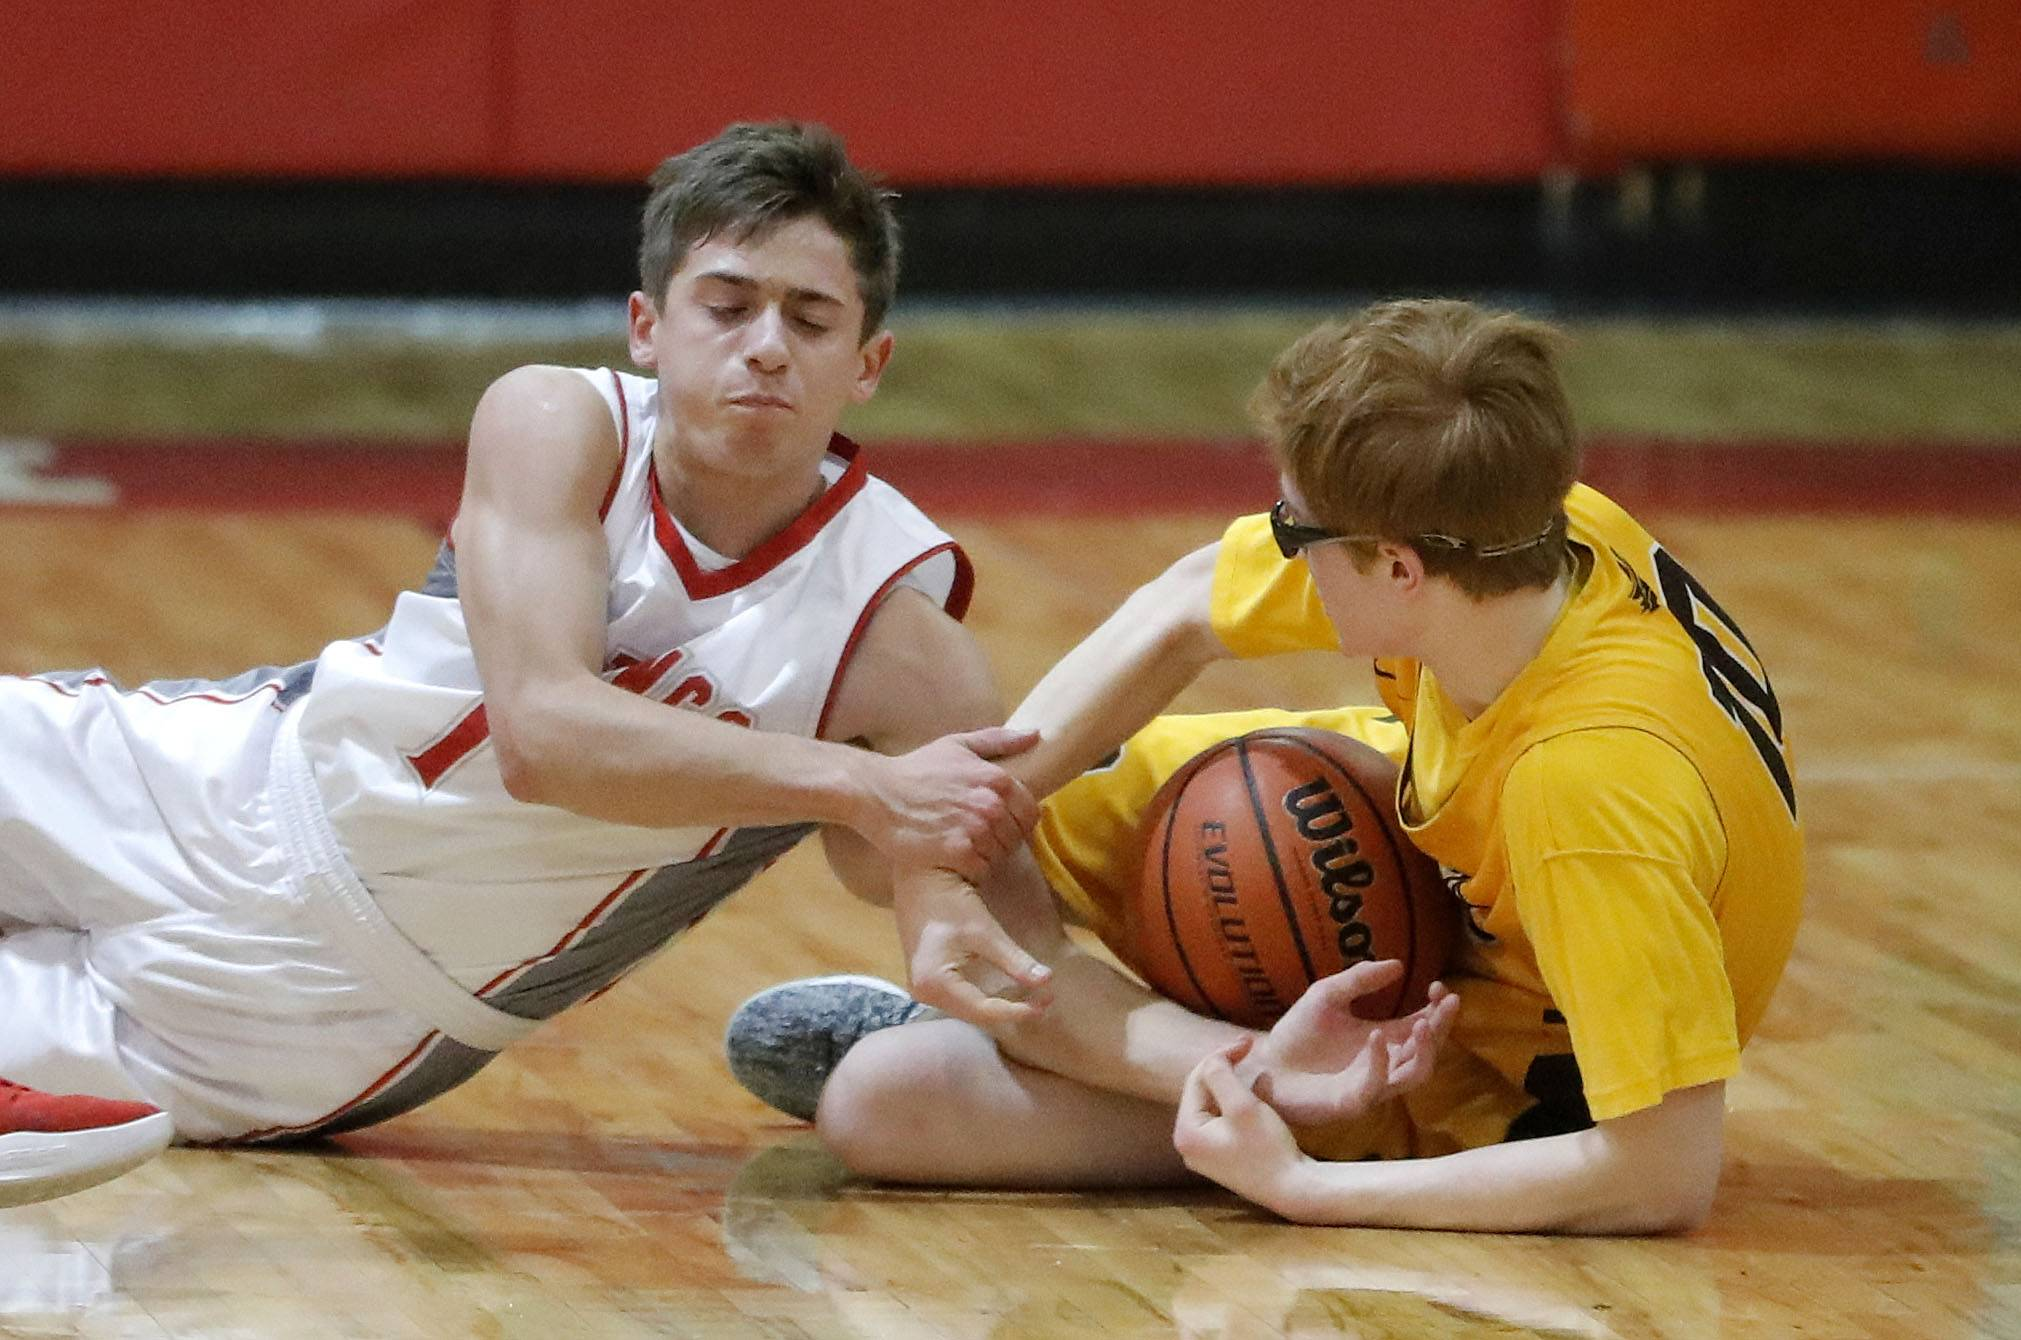 Mundelein's Sam Eddy, left, and Carmel's William Schott battle for a loose ball during their game Wednesday at Mundelein High School.